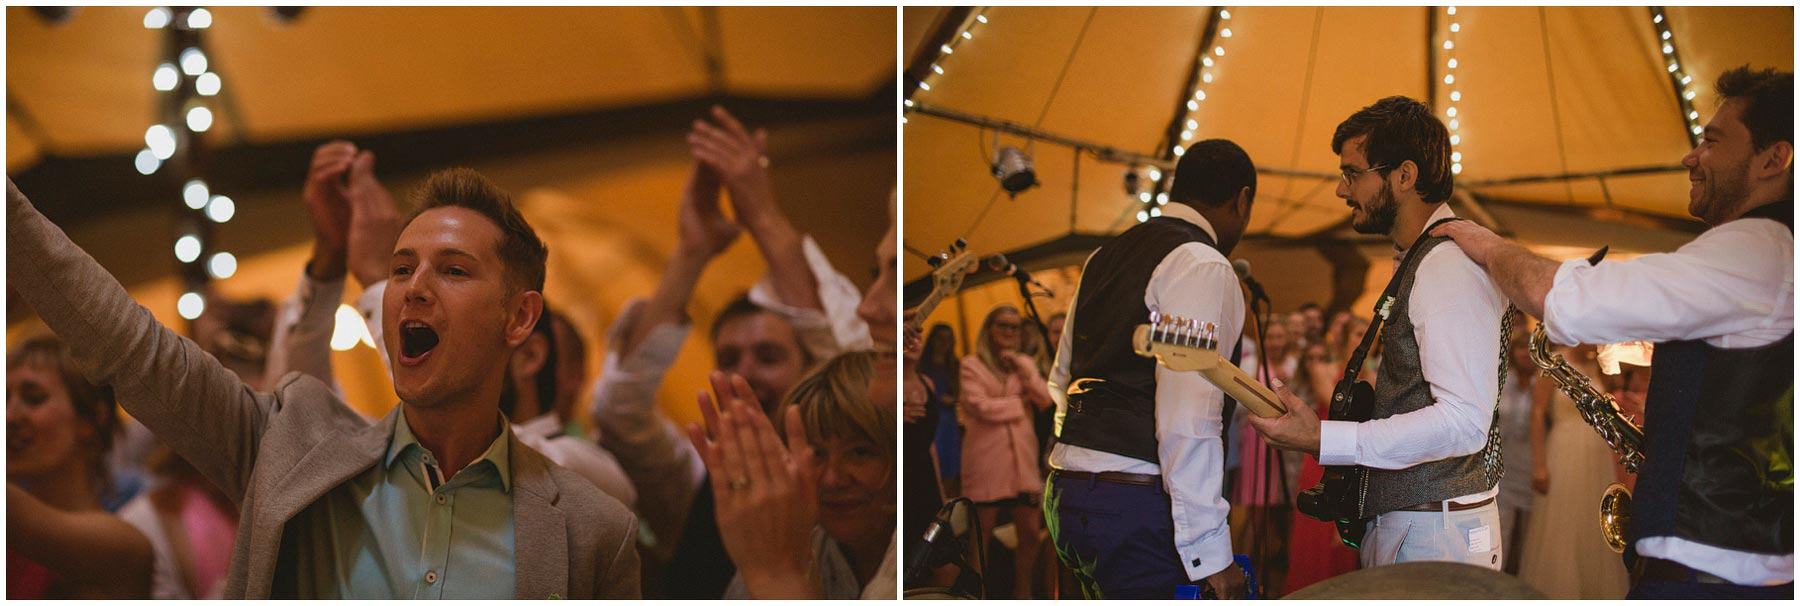 Kent-Festival-Tipi-wedding-photography_0166